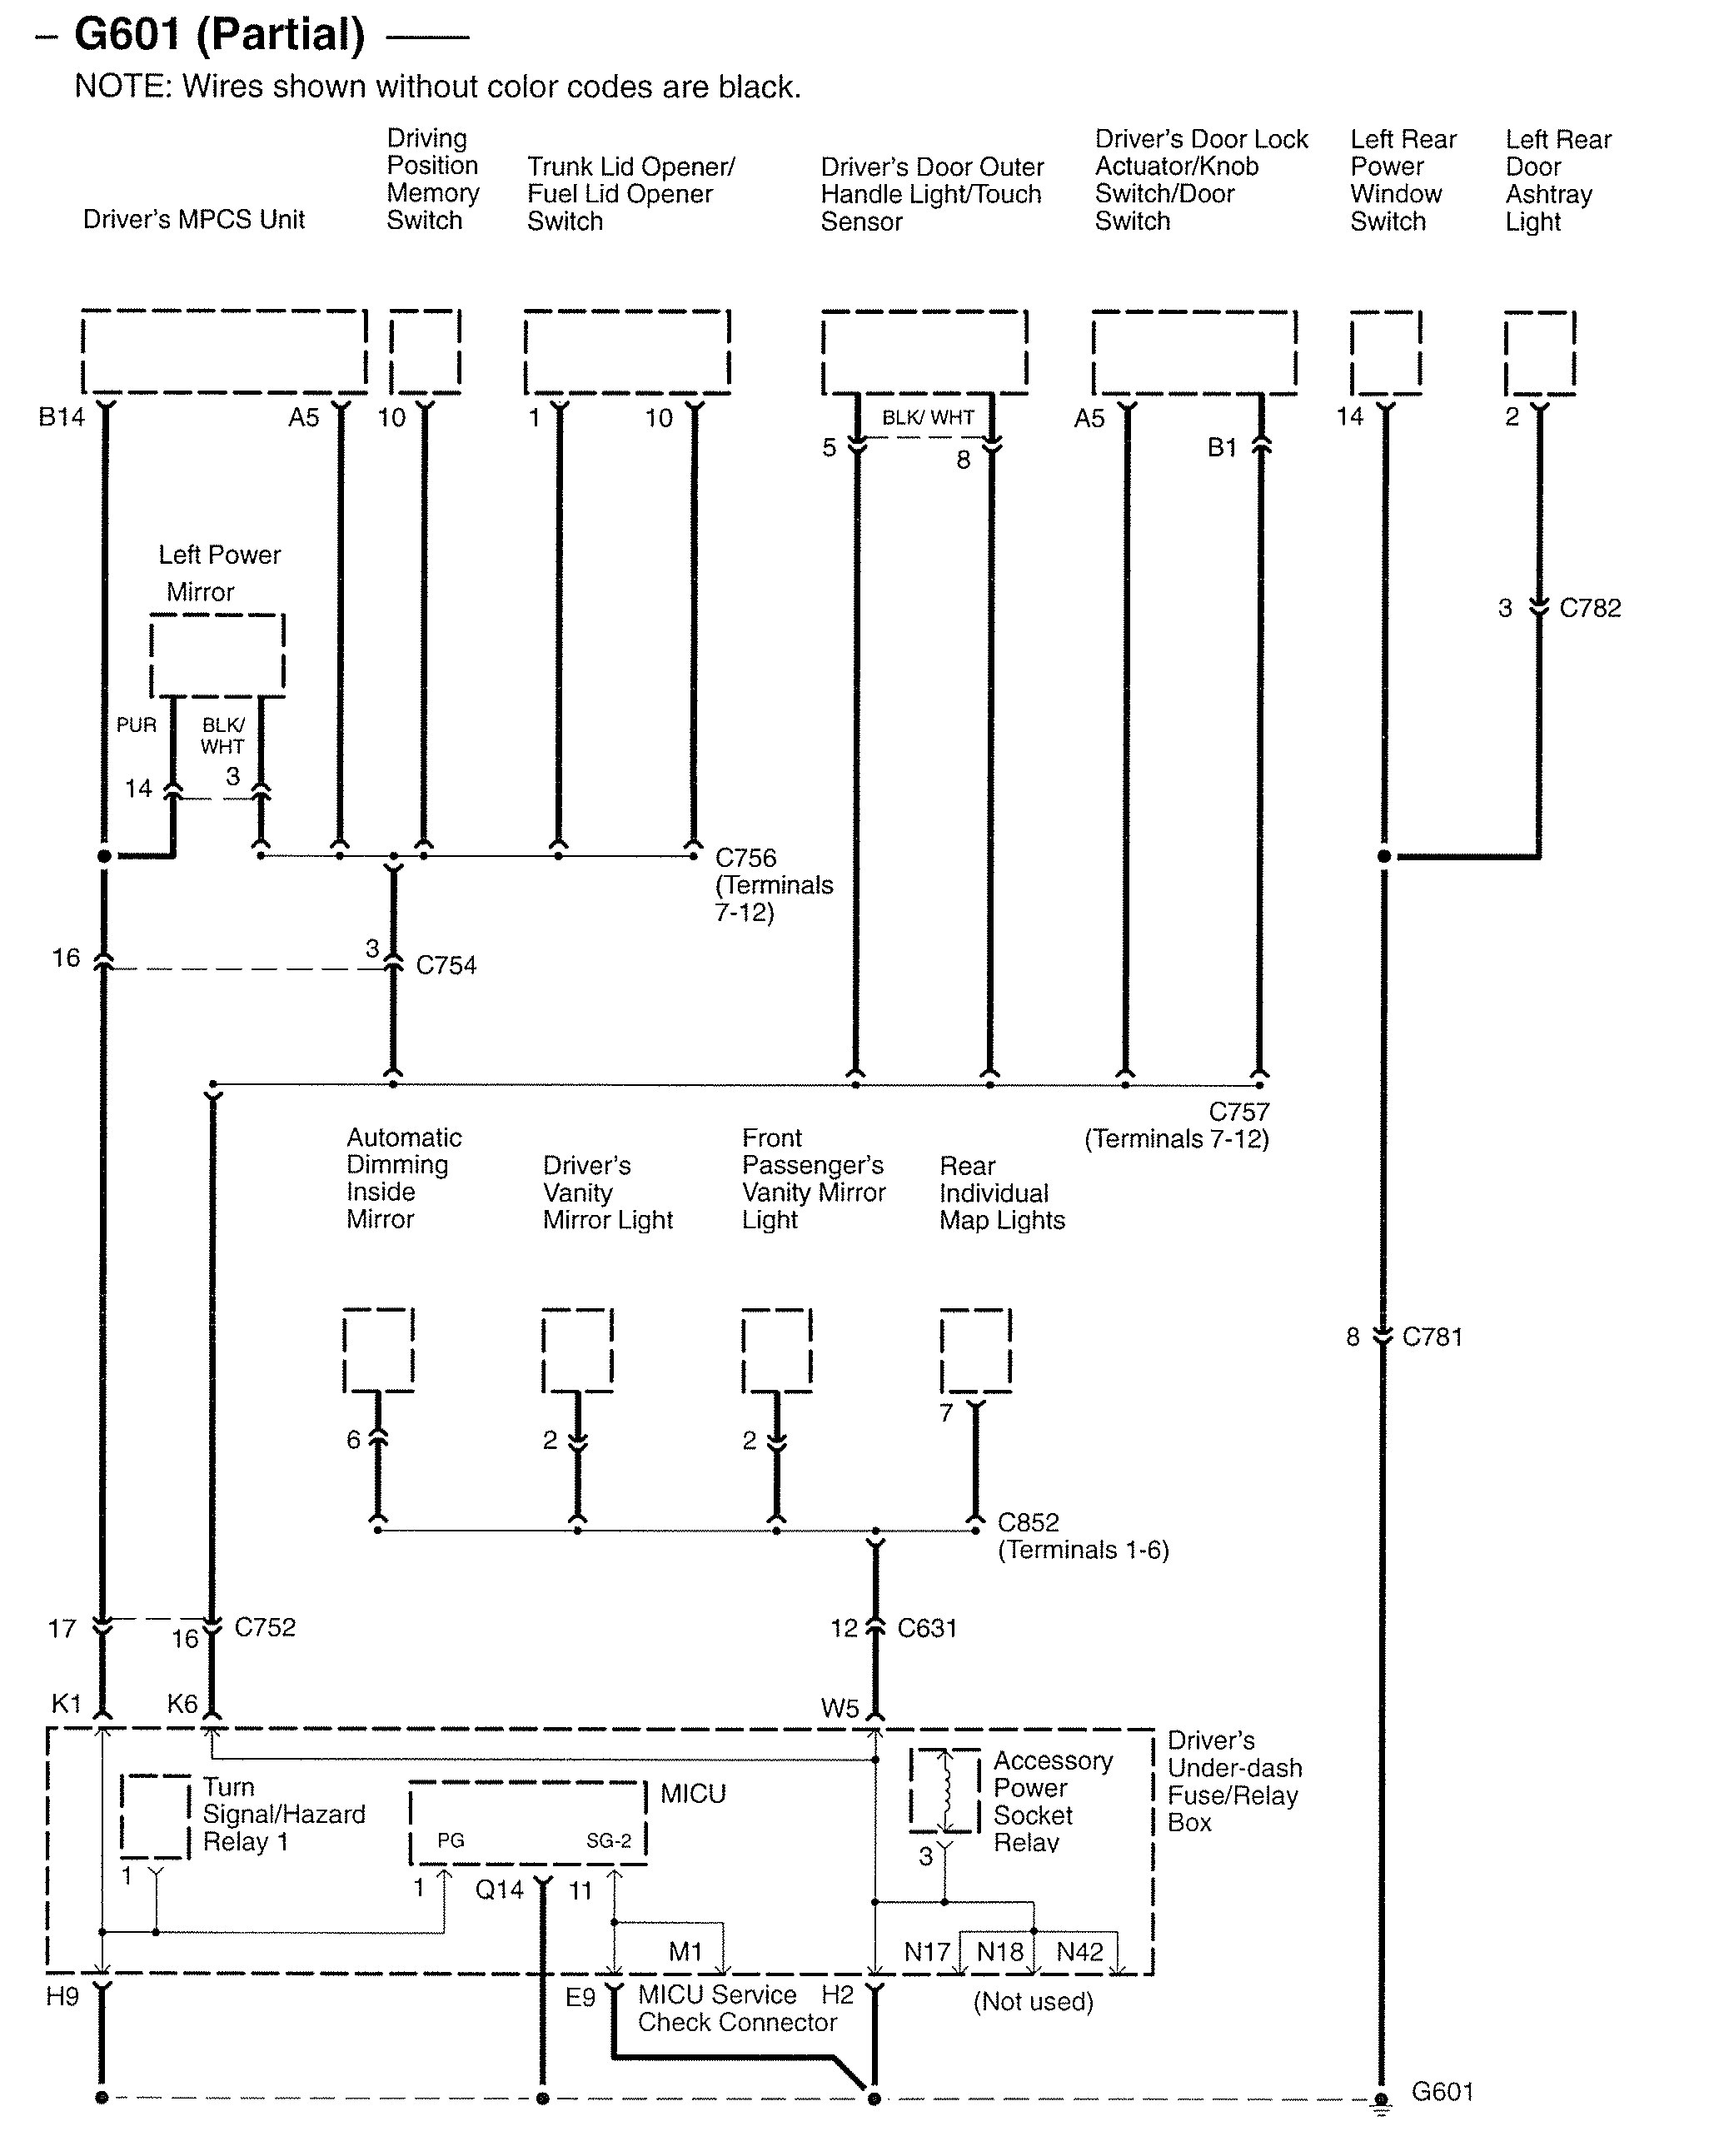 Cool Axxess Gmos 06 Wiring Diagram Gallery - Electrical System Block ...